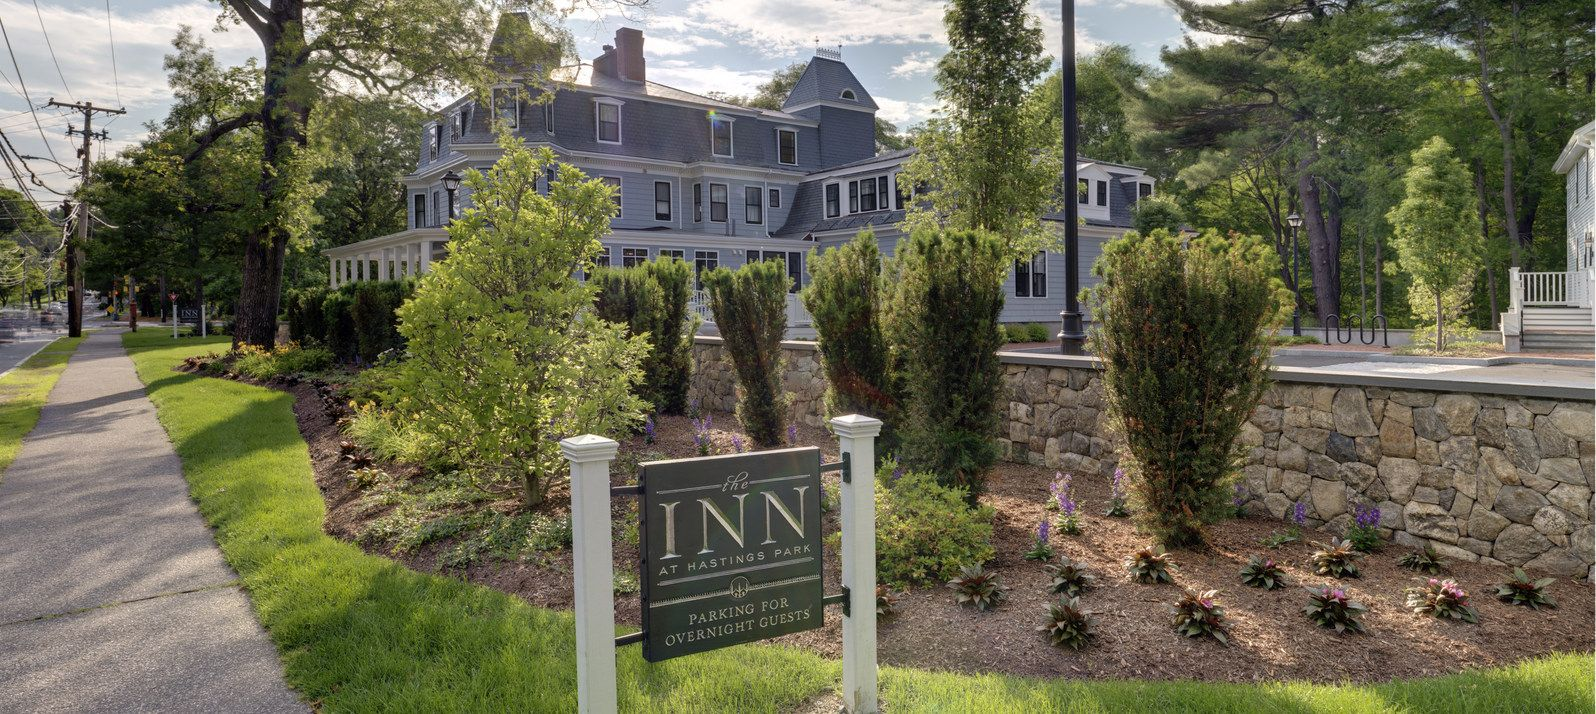 Lexington Ma Hotels The Inn At Hastings Park